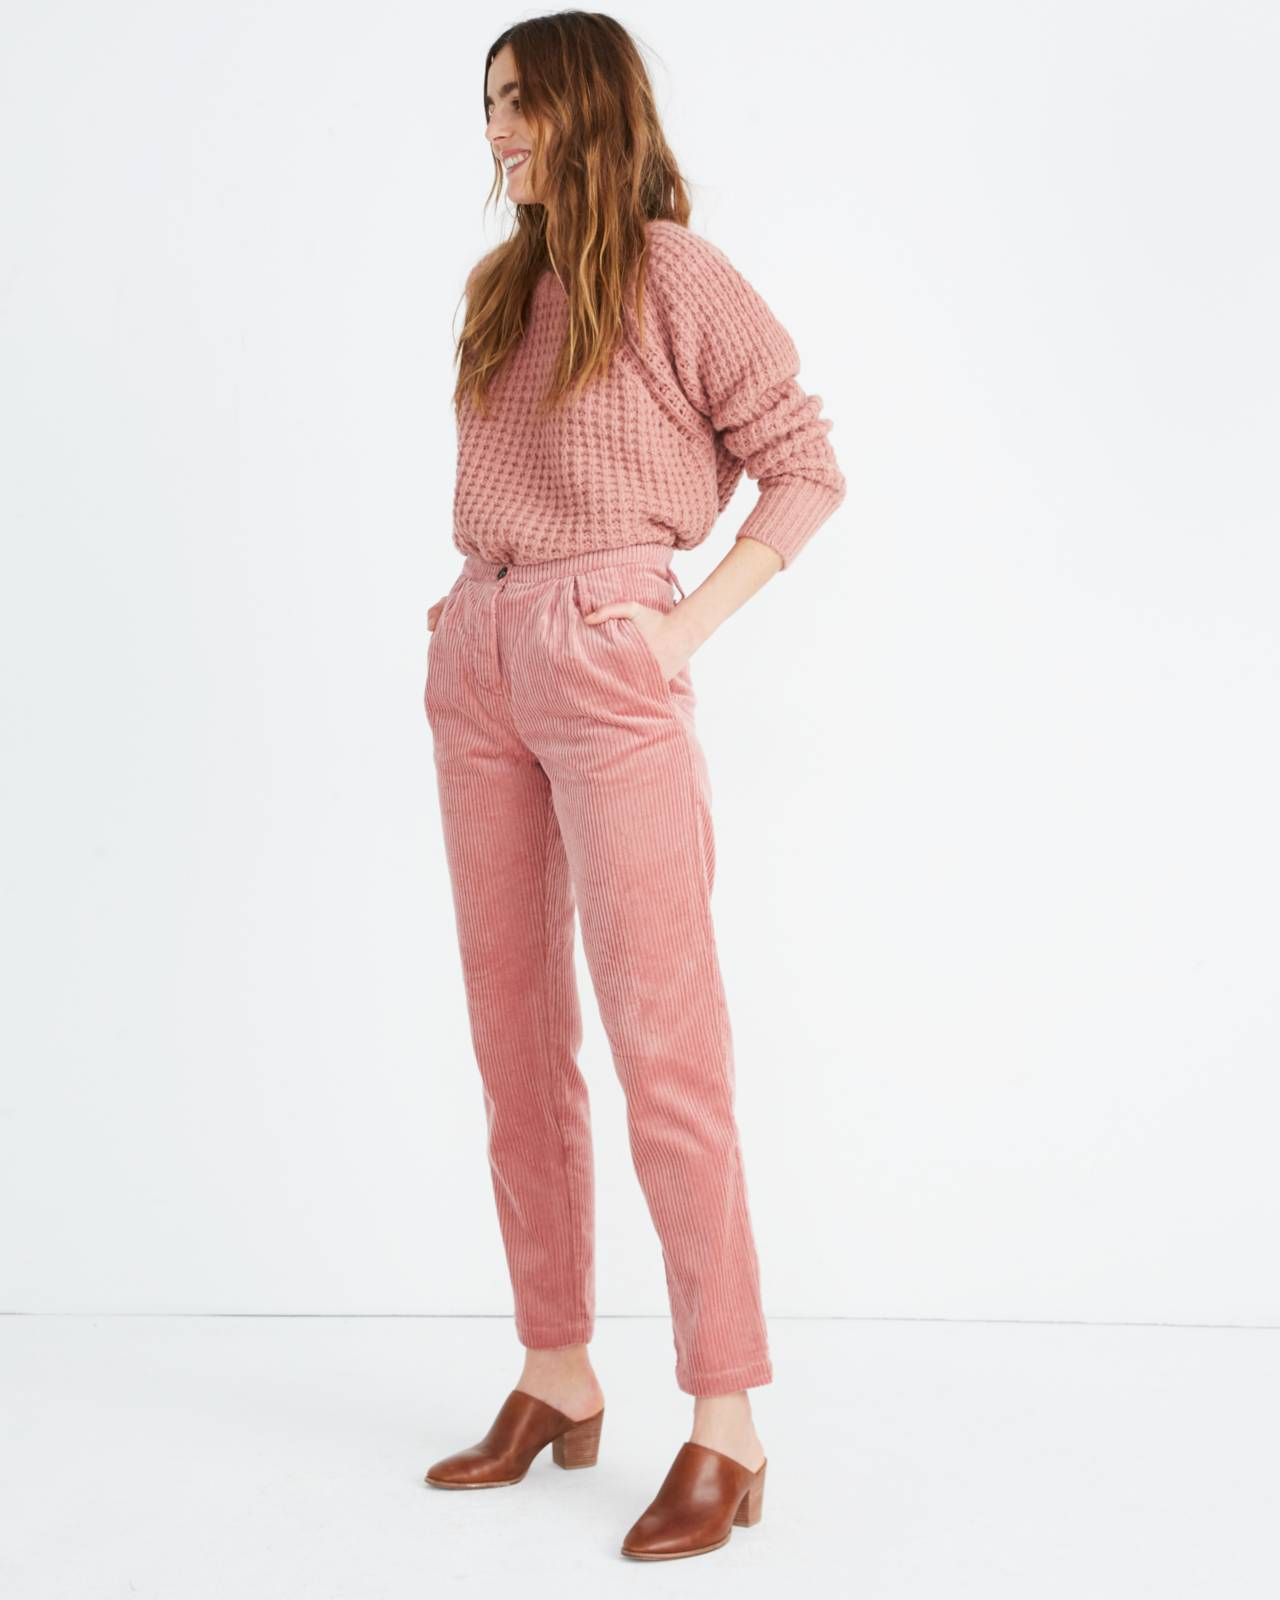 Sess�n™ Corduroy Rocco Pants in misty image 2